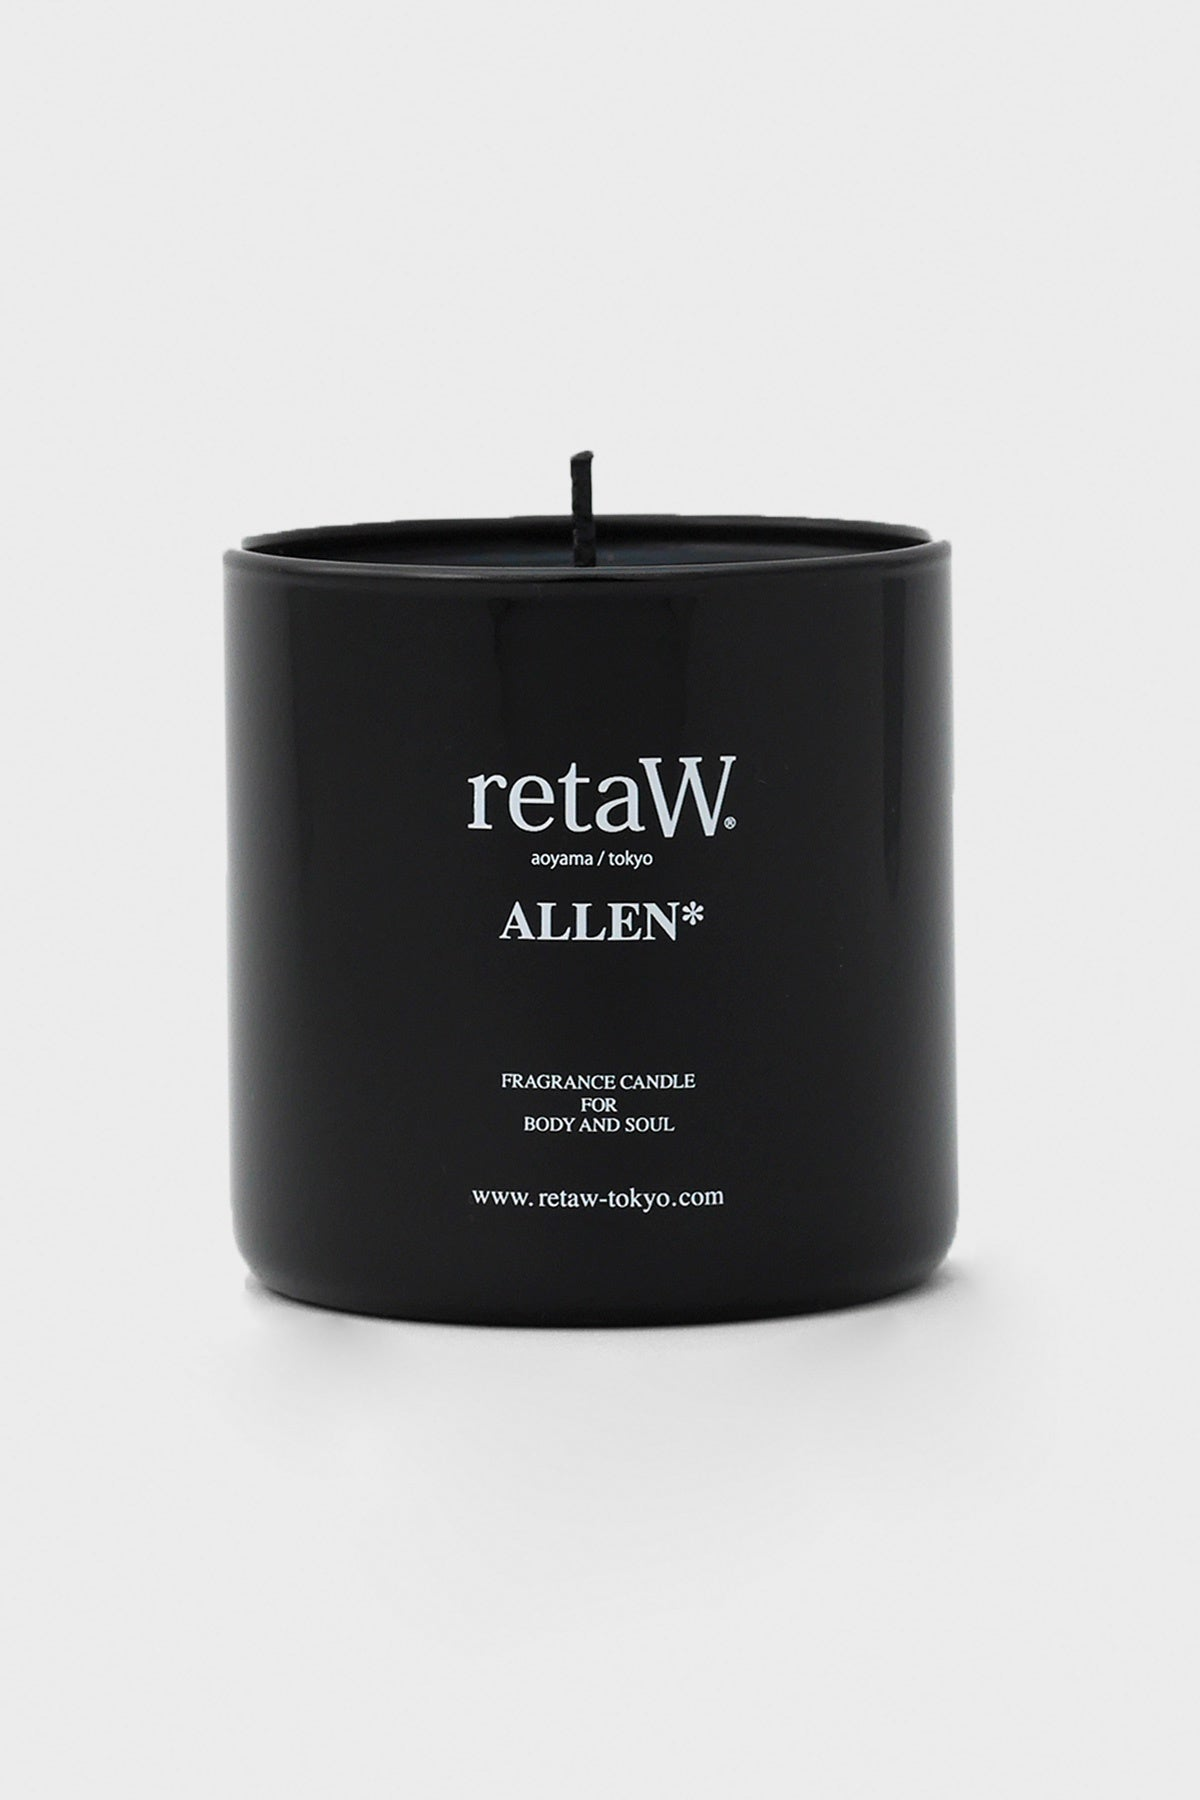 retaW - Black Fragrance Candle - Allen - Canoe Club